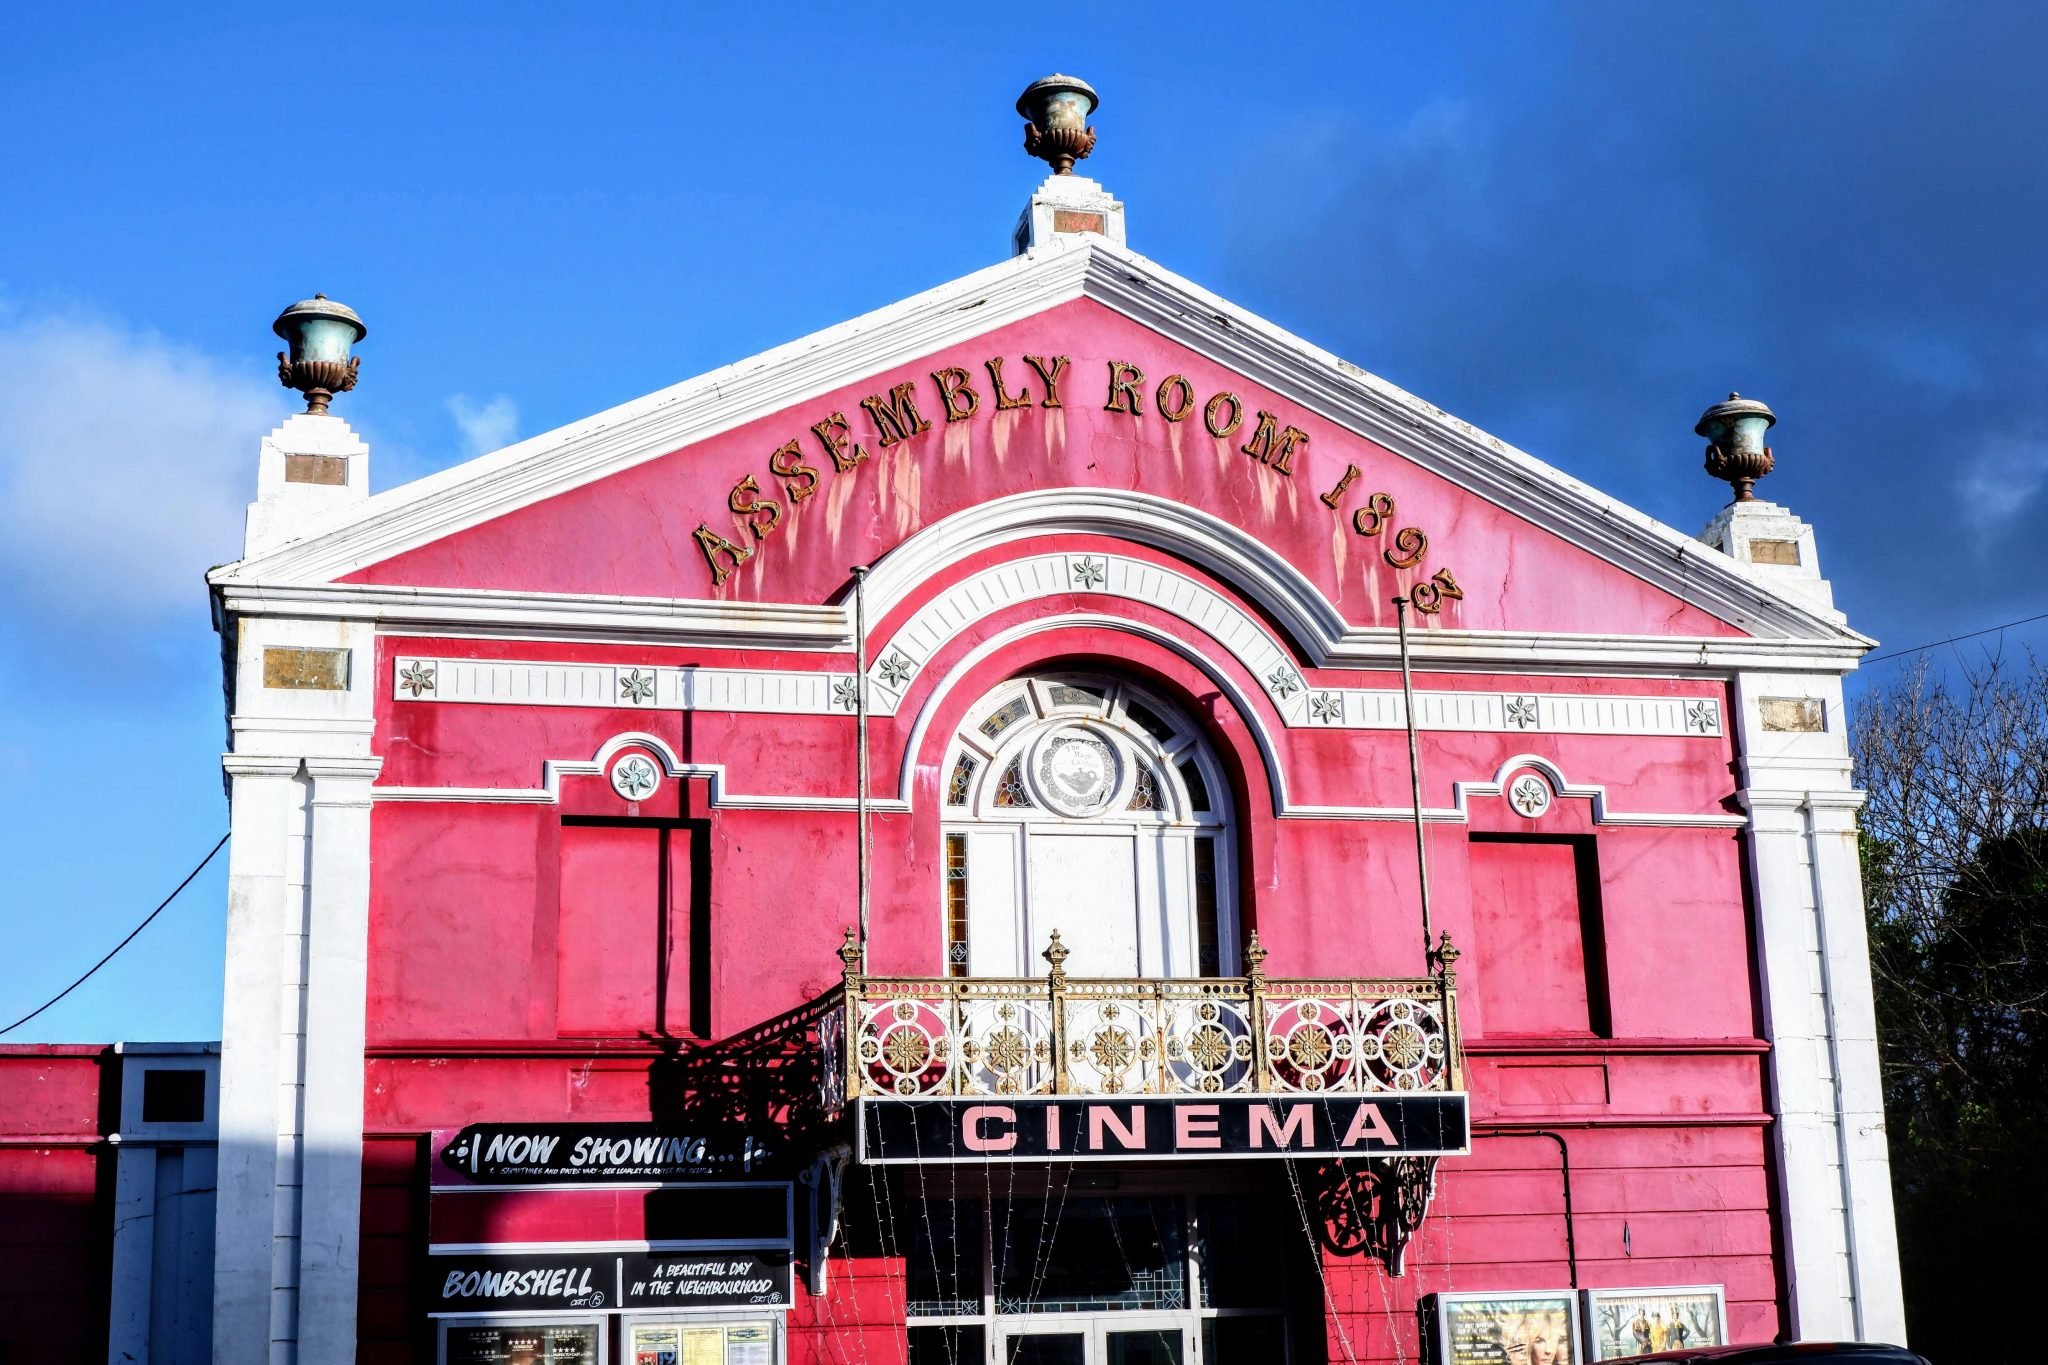 Magic Lantern Cinema, Tywyn, Wales